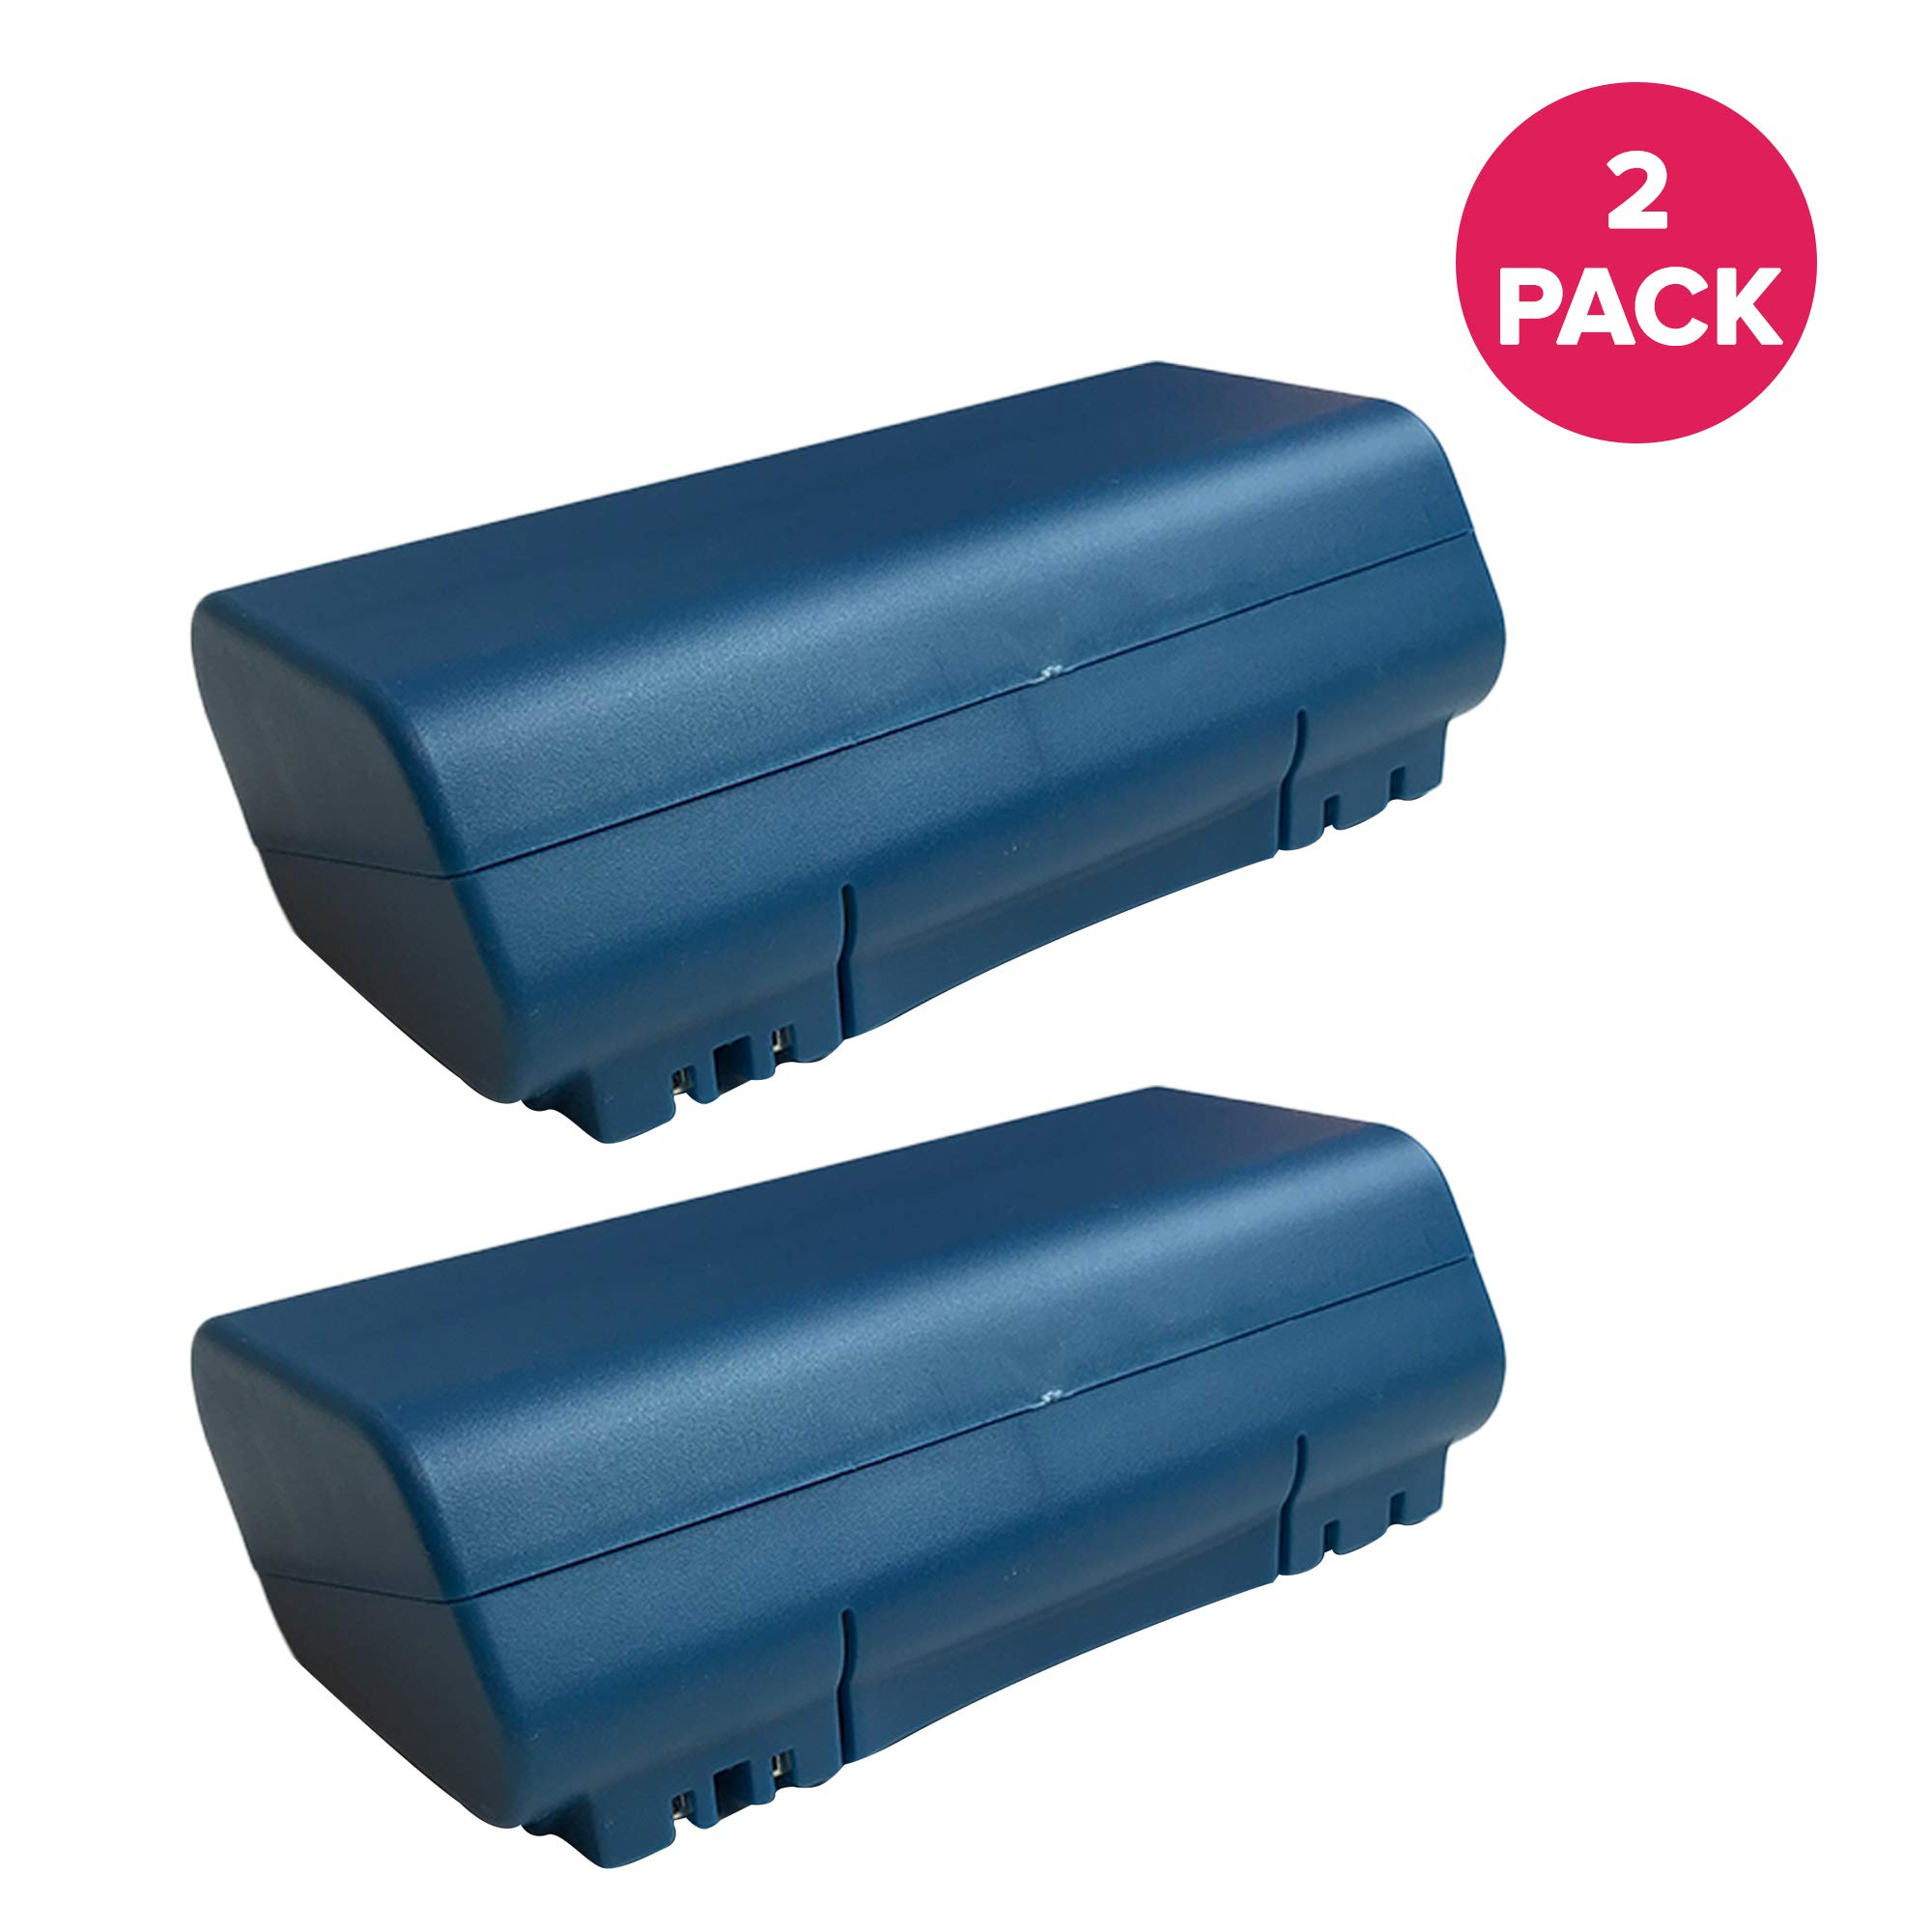 Crucial Vacuum Replacement for iRobot 14.4v, 3500mAh Battery Fits Scooba Series, Compatible with Part # 5900, Long Lasting & Rechargeable (2 Pack)